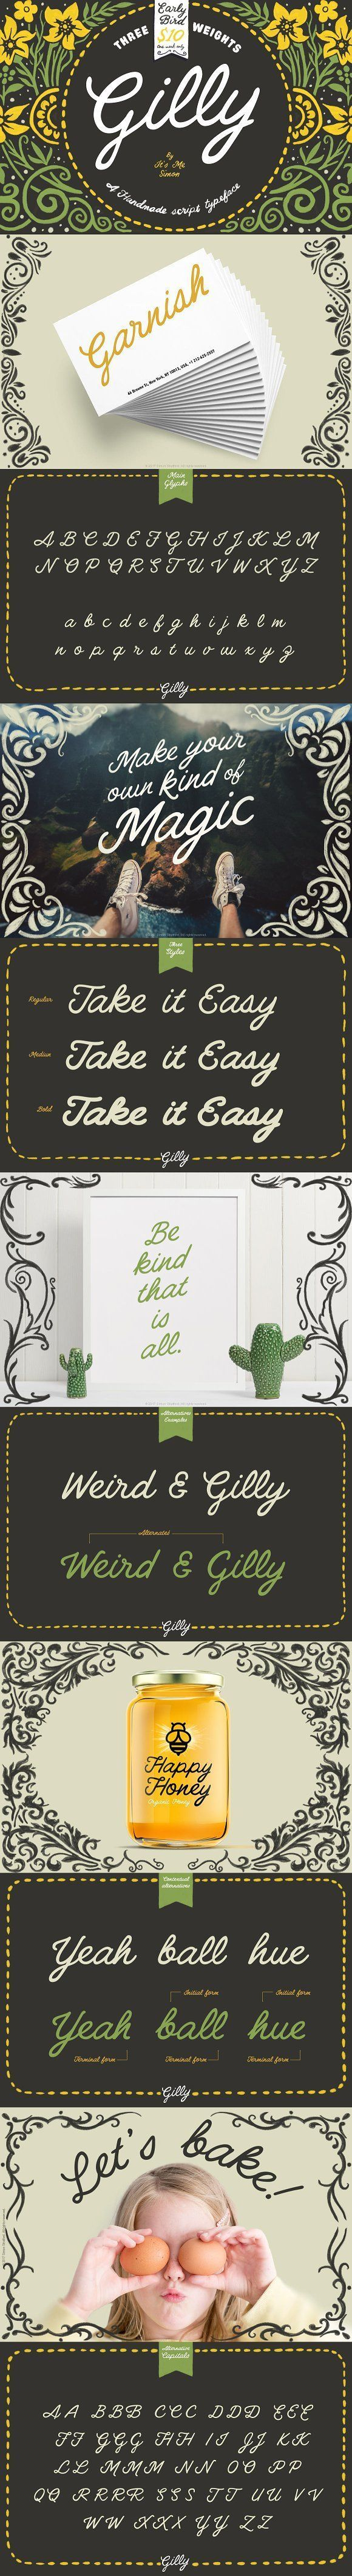 Gilly Script font - Handmade, with a mix of inspiration from hand painted signage with a large dollop of American western. Its got big bold lines that have a somewhat retro look and feel. Great for stationery, invitations and cards, logos, titles and slogans or anything where you want that handmade look. By It's me simon $10 #typeface #cursive #vintage #affiliatelink